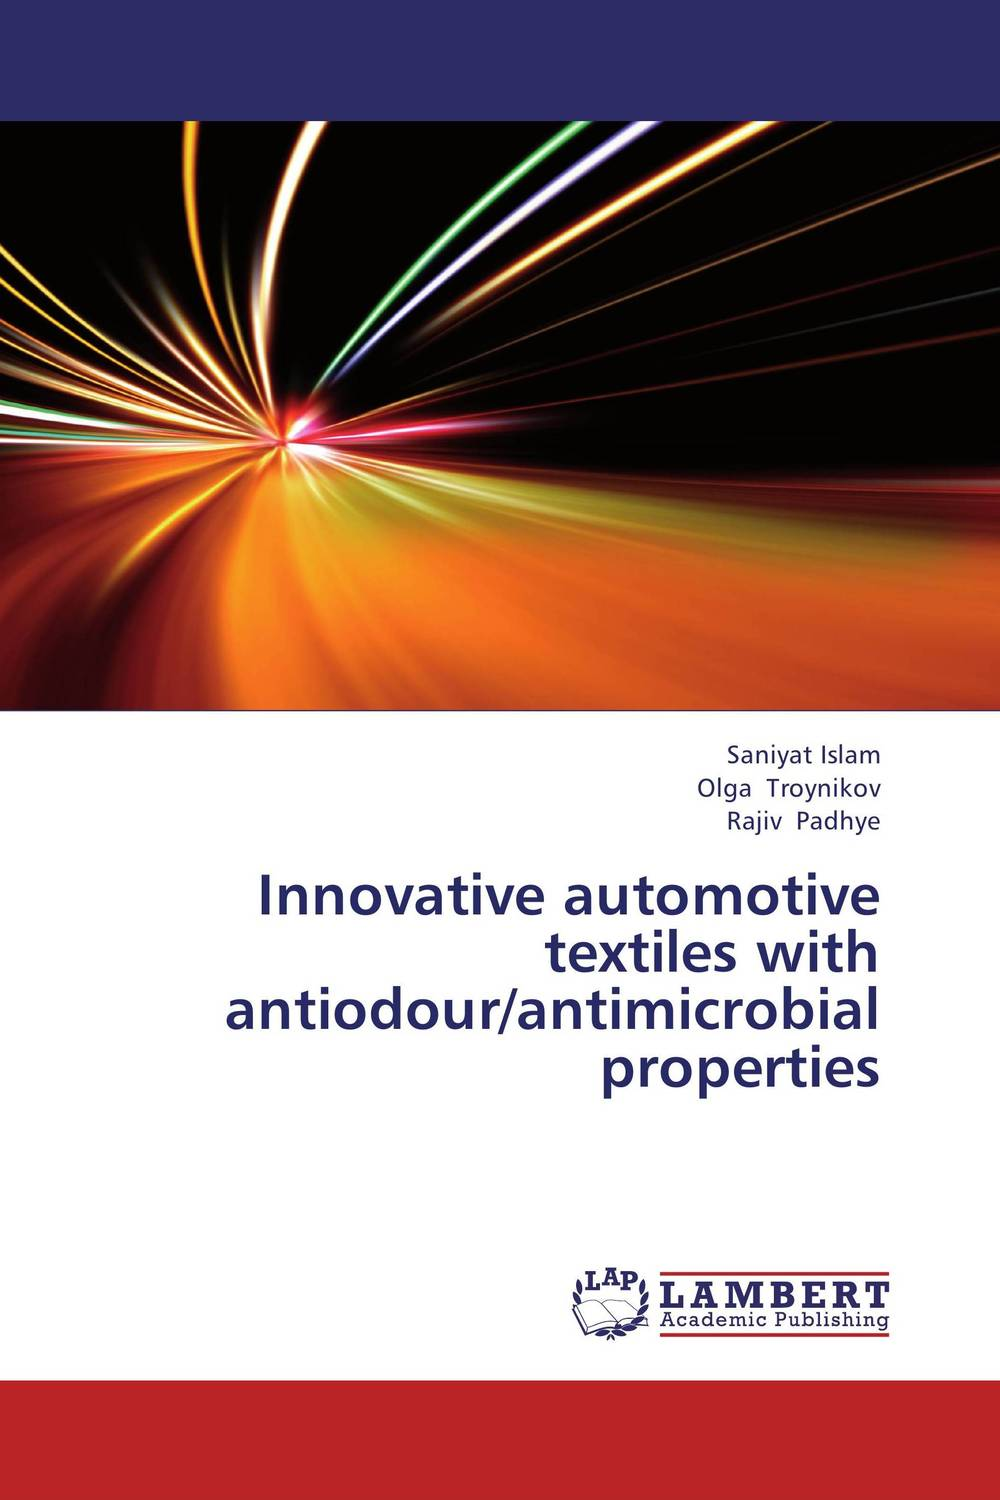 Innovative automotive textiles with antiodour/antimicrobial properties parnas bibliotheca microbiologica brucella phages properties and application